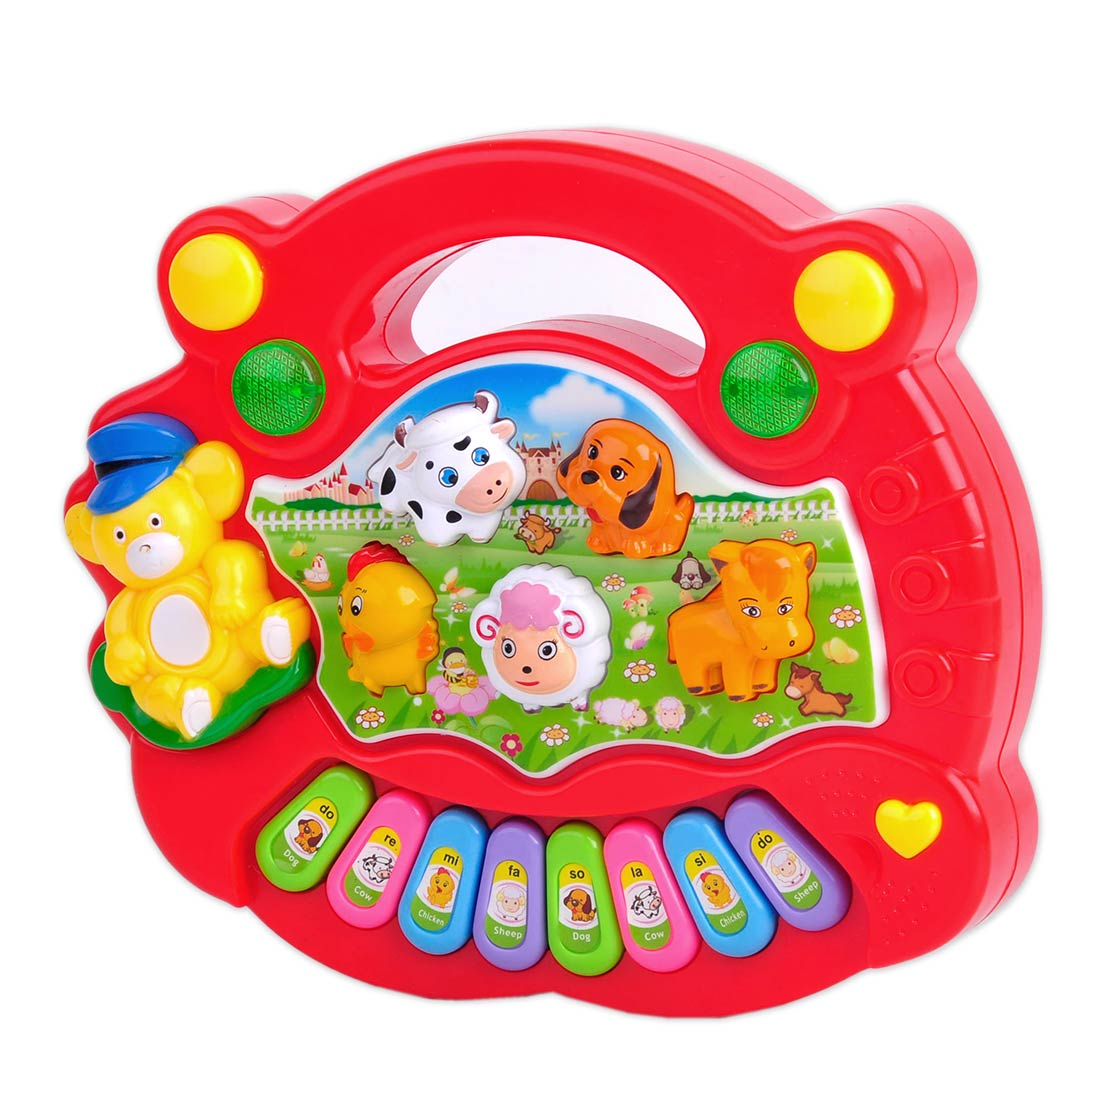 musik spielzeug klavier cartoon tiere elektronisch instrument babyspielzeug neu ebay. Black Bedroom Furniture Sets. Home Design Ideas